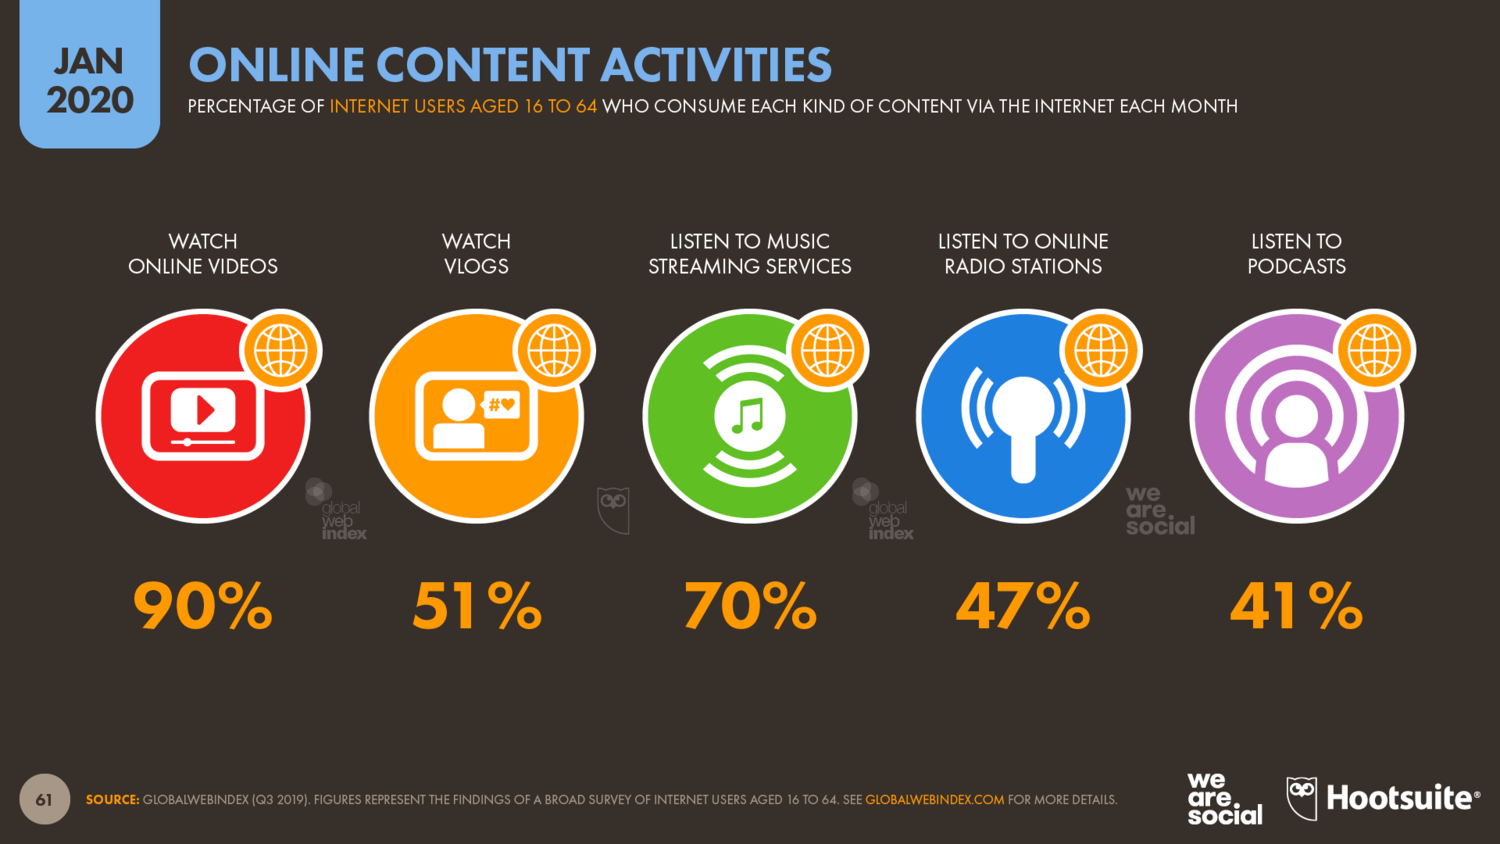 Kinds+of+Online+Content+Consumed+by+Internet+Users+Each+Month+January+2020+DataReportal